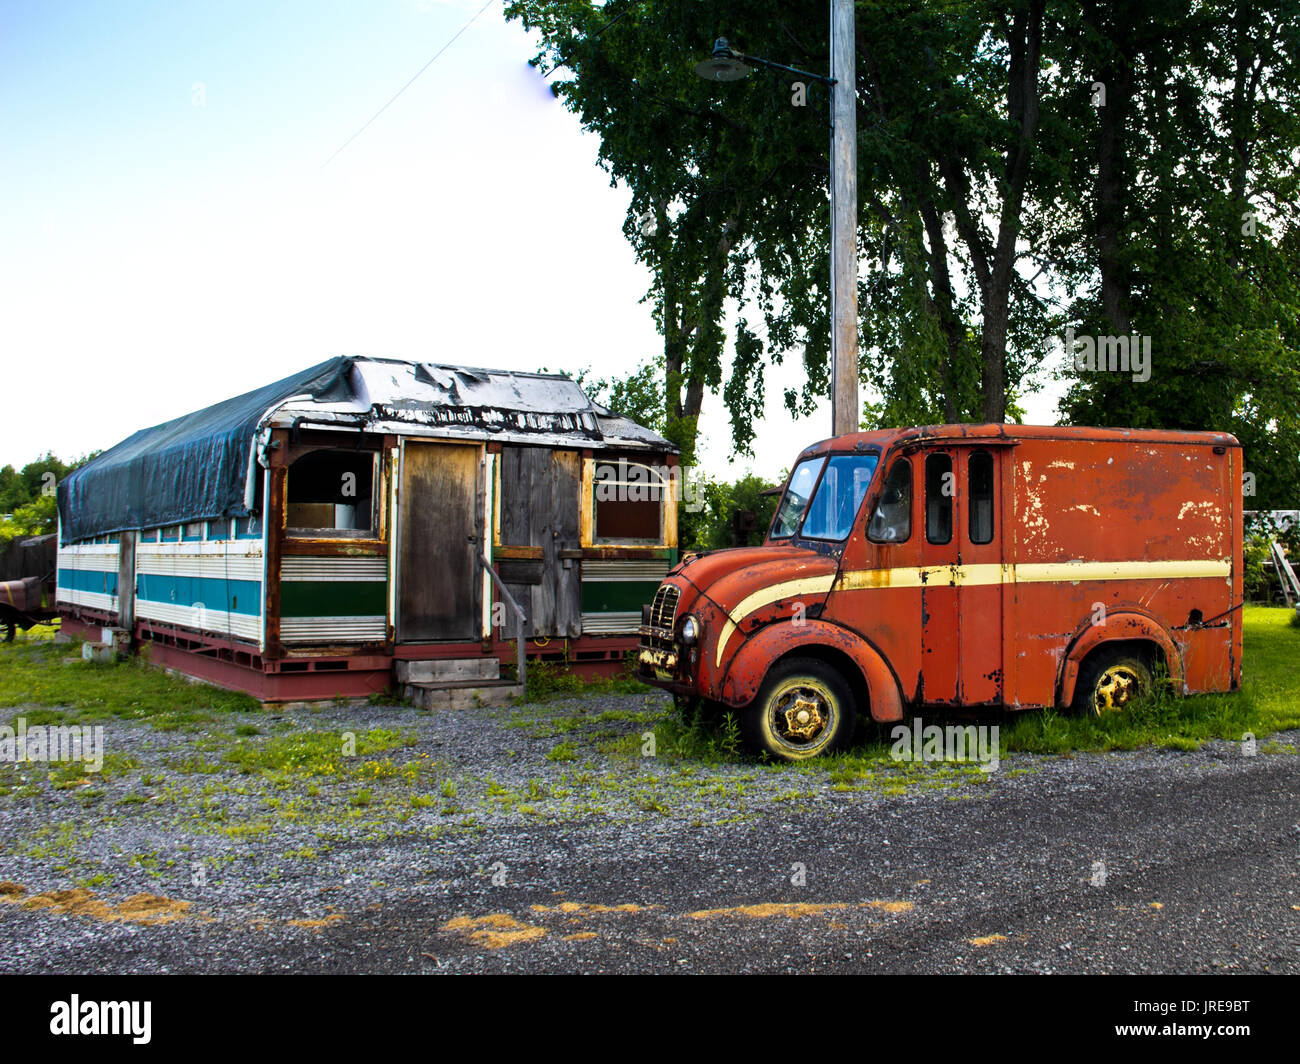 Diner Delivery An Antiquated Delivery Rruck And A Dilapidated Diner Sit Out In